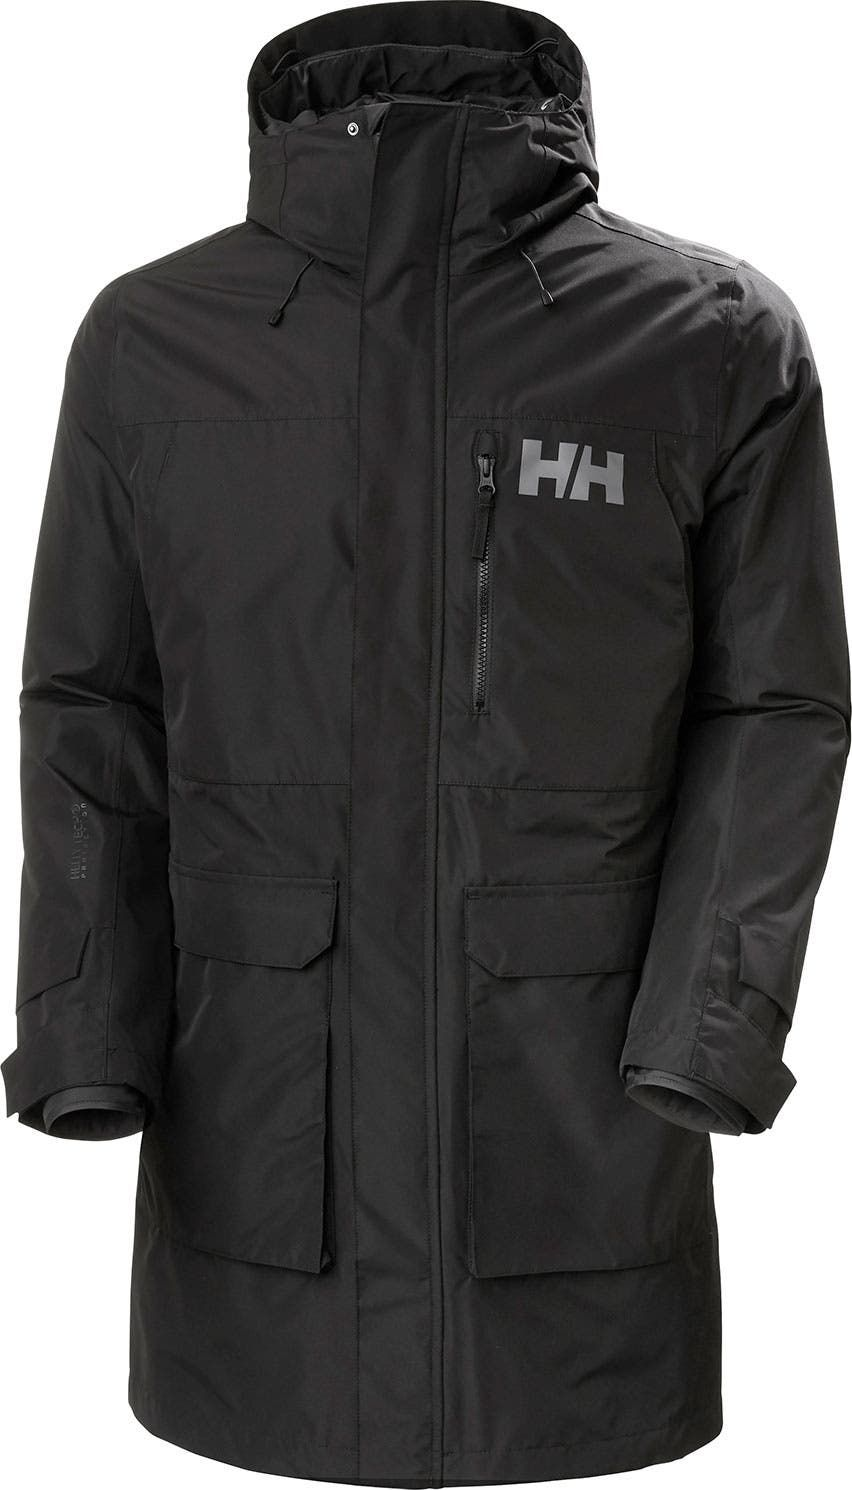 HELLY HANSEN Rigging Coat Men's Black L